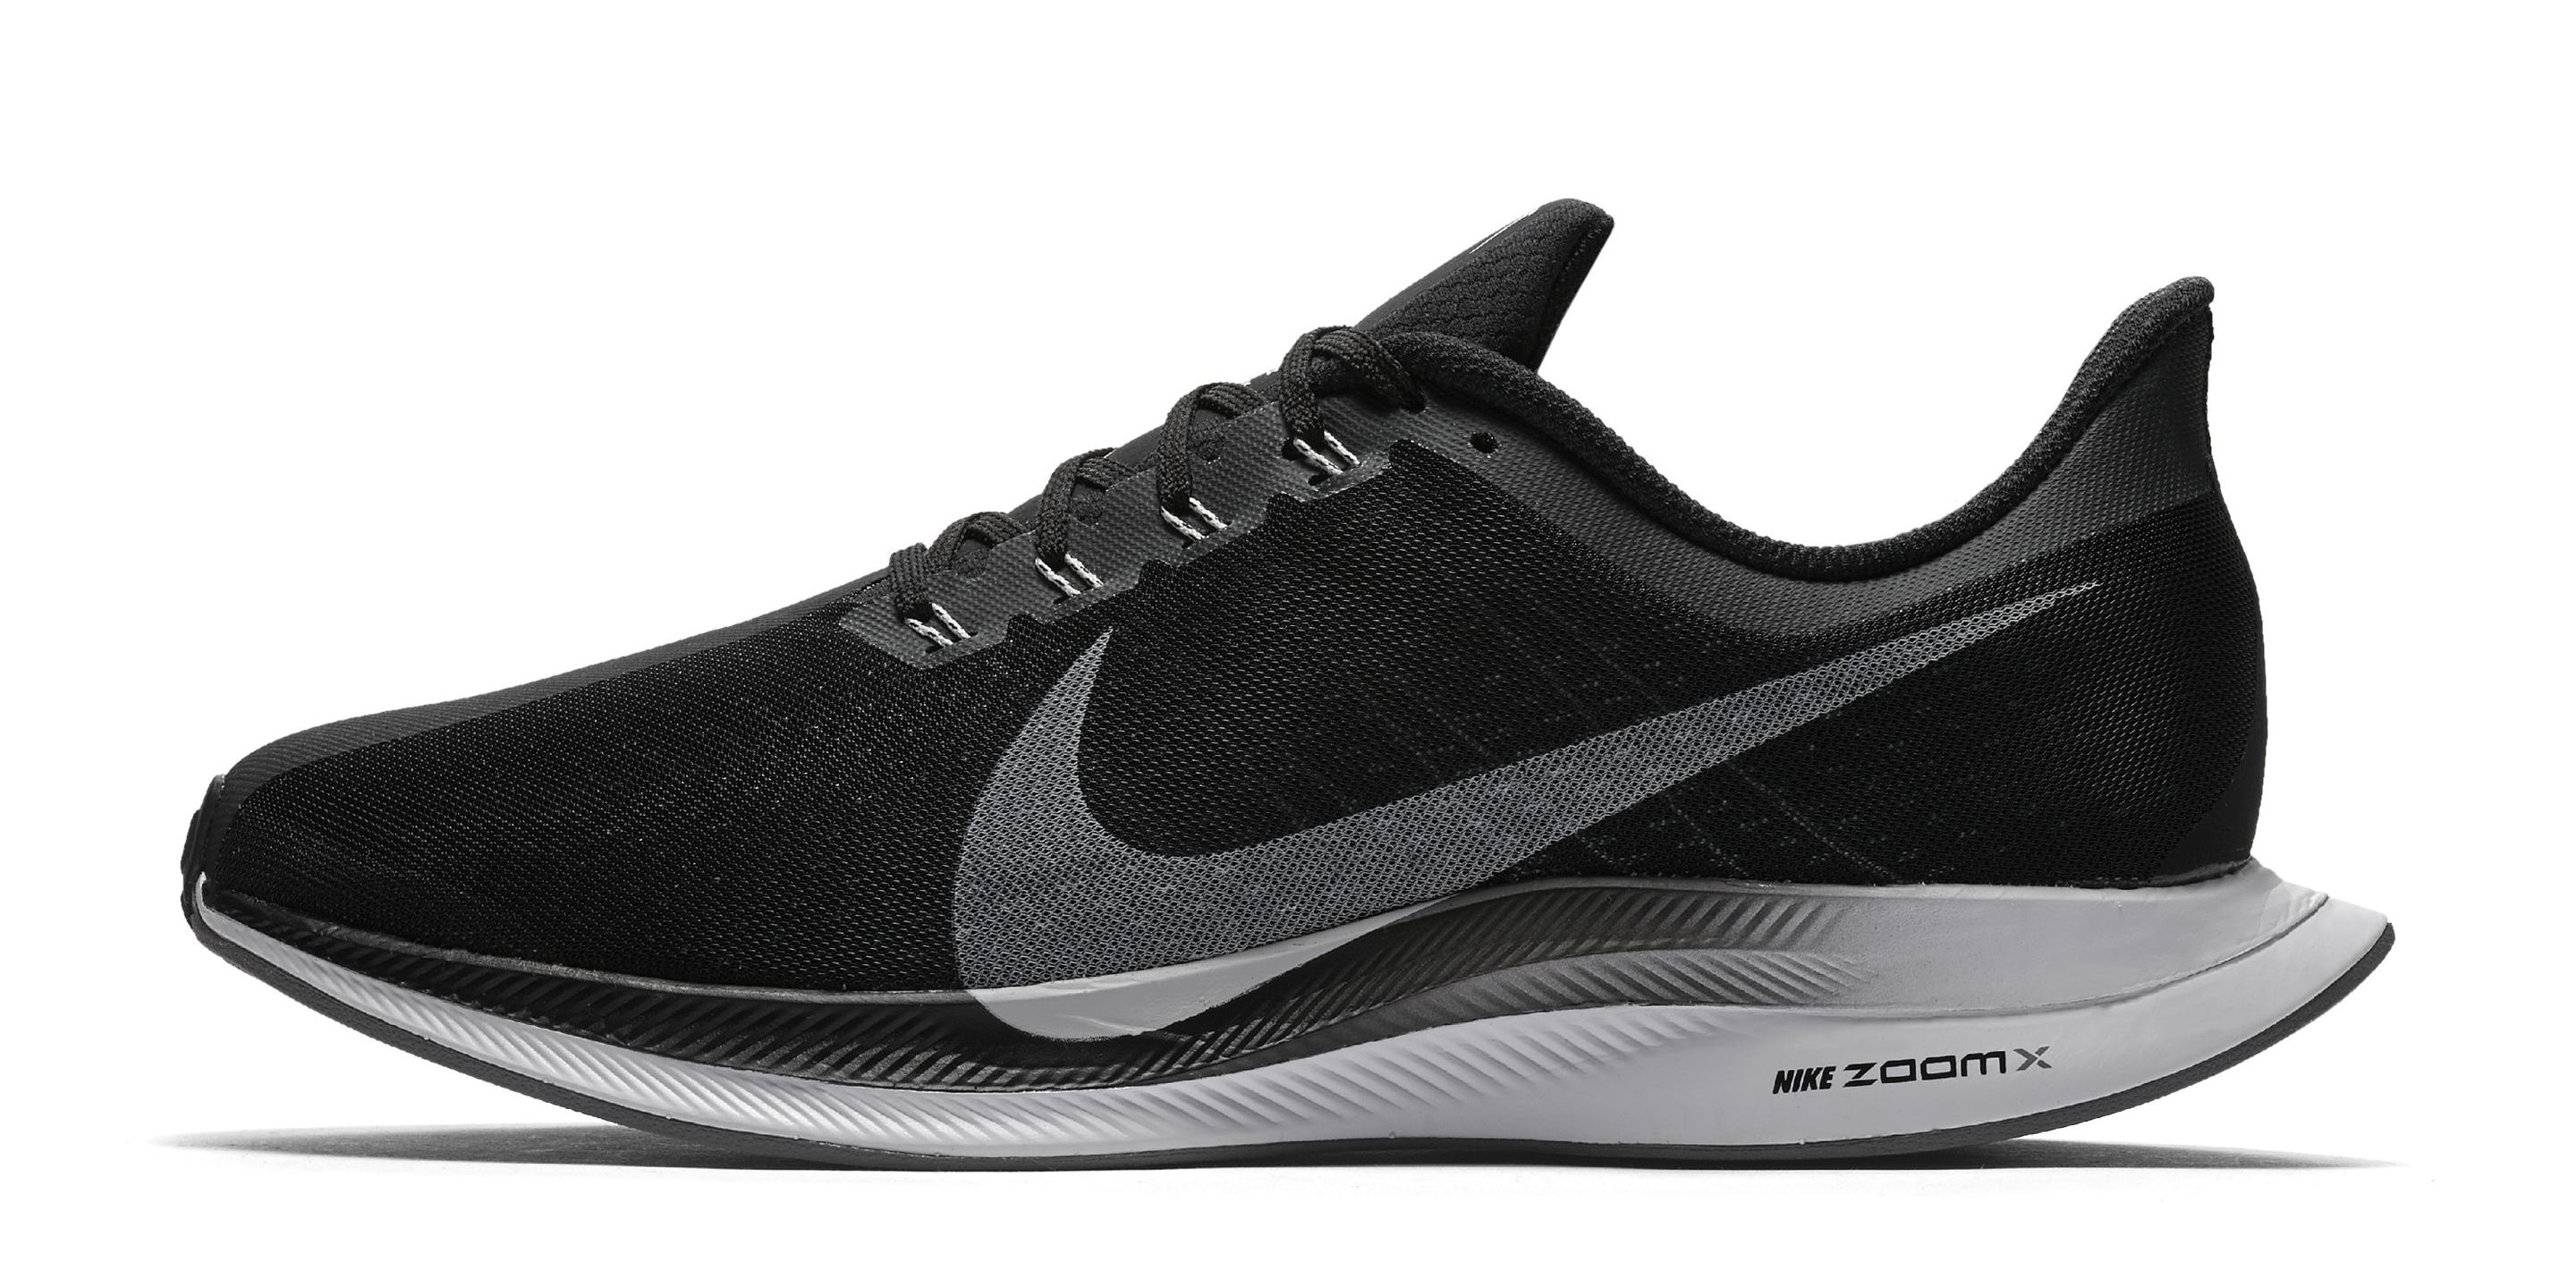 052142b7ce Best Nike Running Shoes | Nike Shoe Reviews 2019